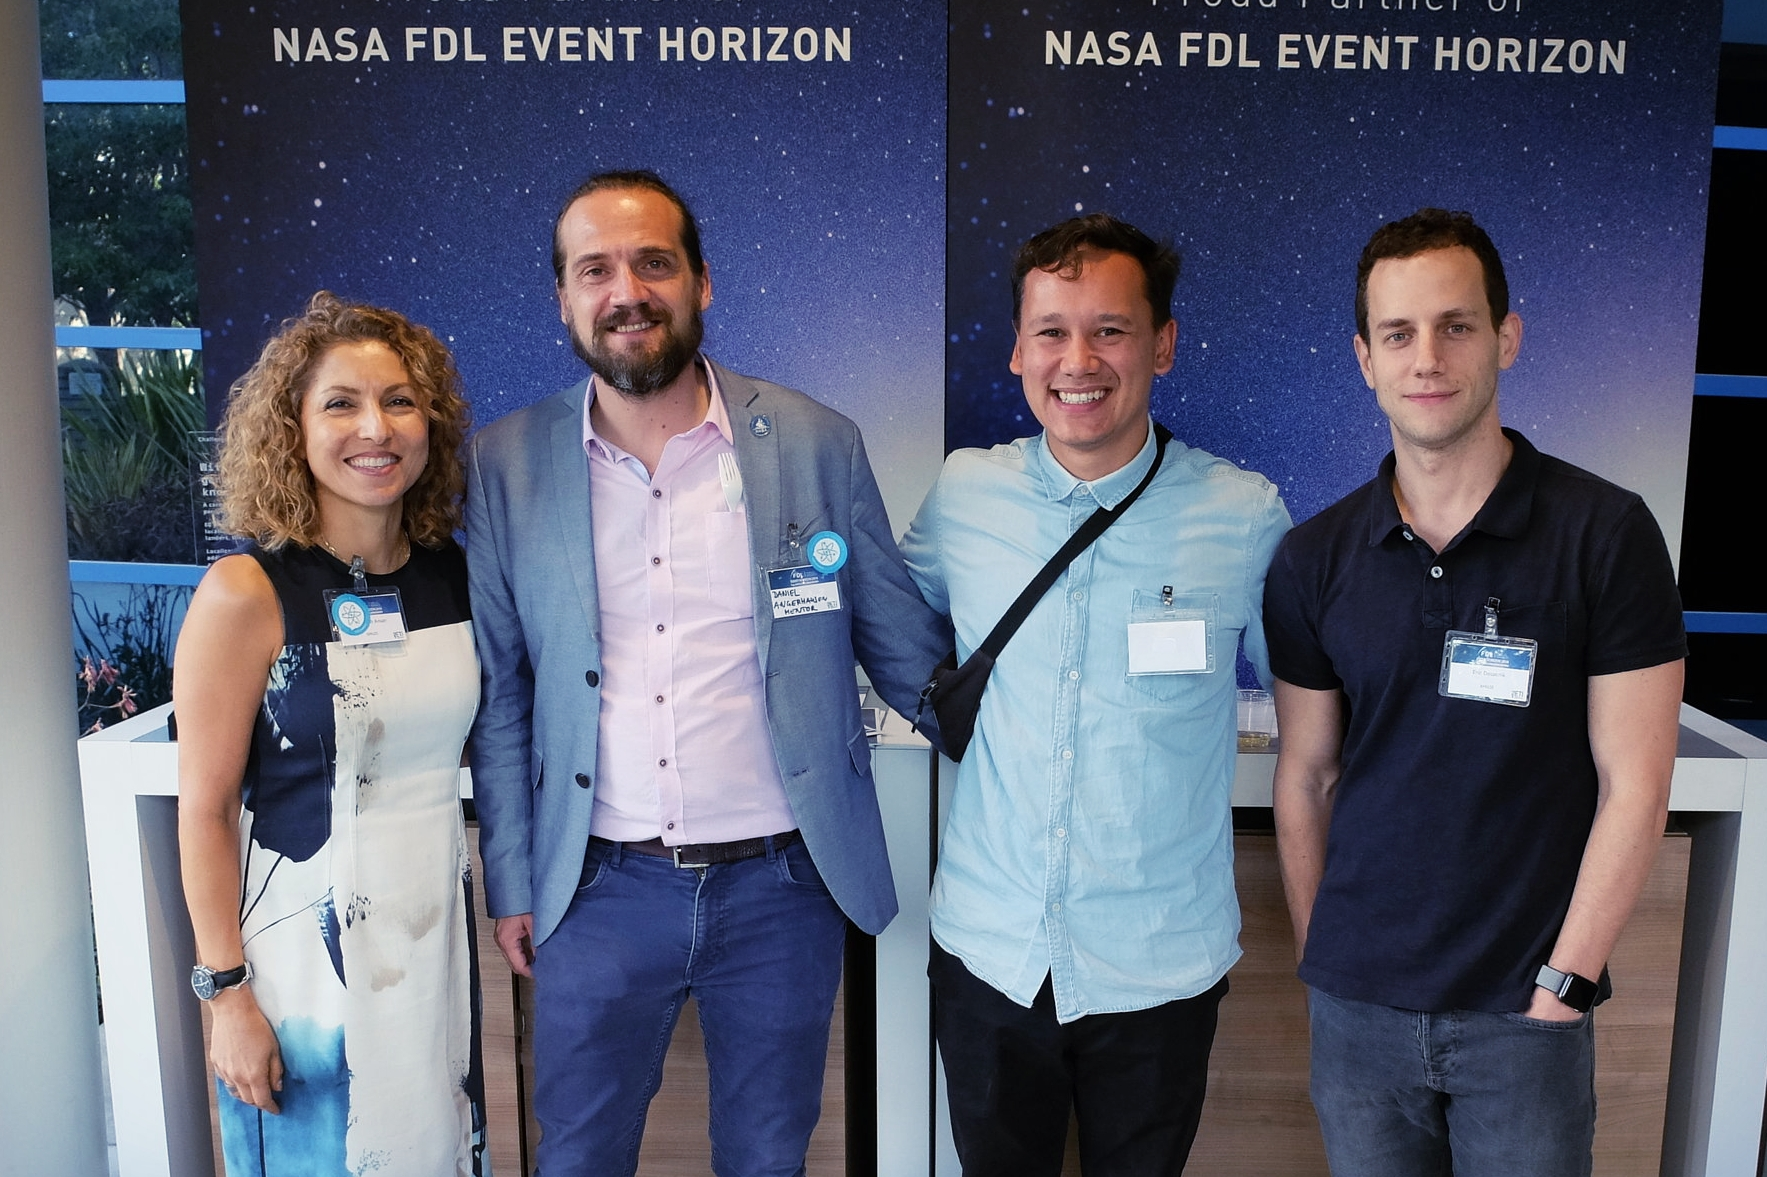 This summer the Explainables Amran and Daniel met now XPRIZE CEO  Anousheh Ansari  and her team at NASA FDL event horizon. They immediately talked about how they could work together. Can you spot the Explainables sticker on Anousheh's name tag?  Below: during visioneering 2018 Explainable Daniel Angerhausen made a lot of new interesting contacts - for example Pharrell Williams, Robert Picardo, Saul Perlmutter and Erik Lindberg. Stay tuned for some new projects brewing with them.